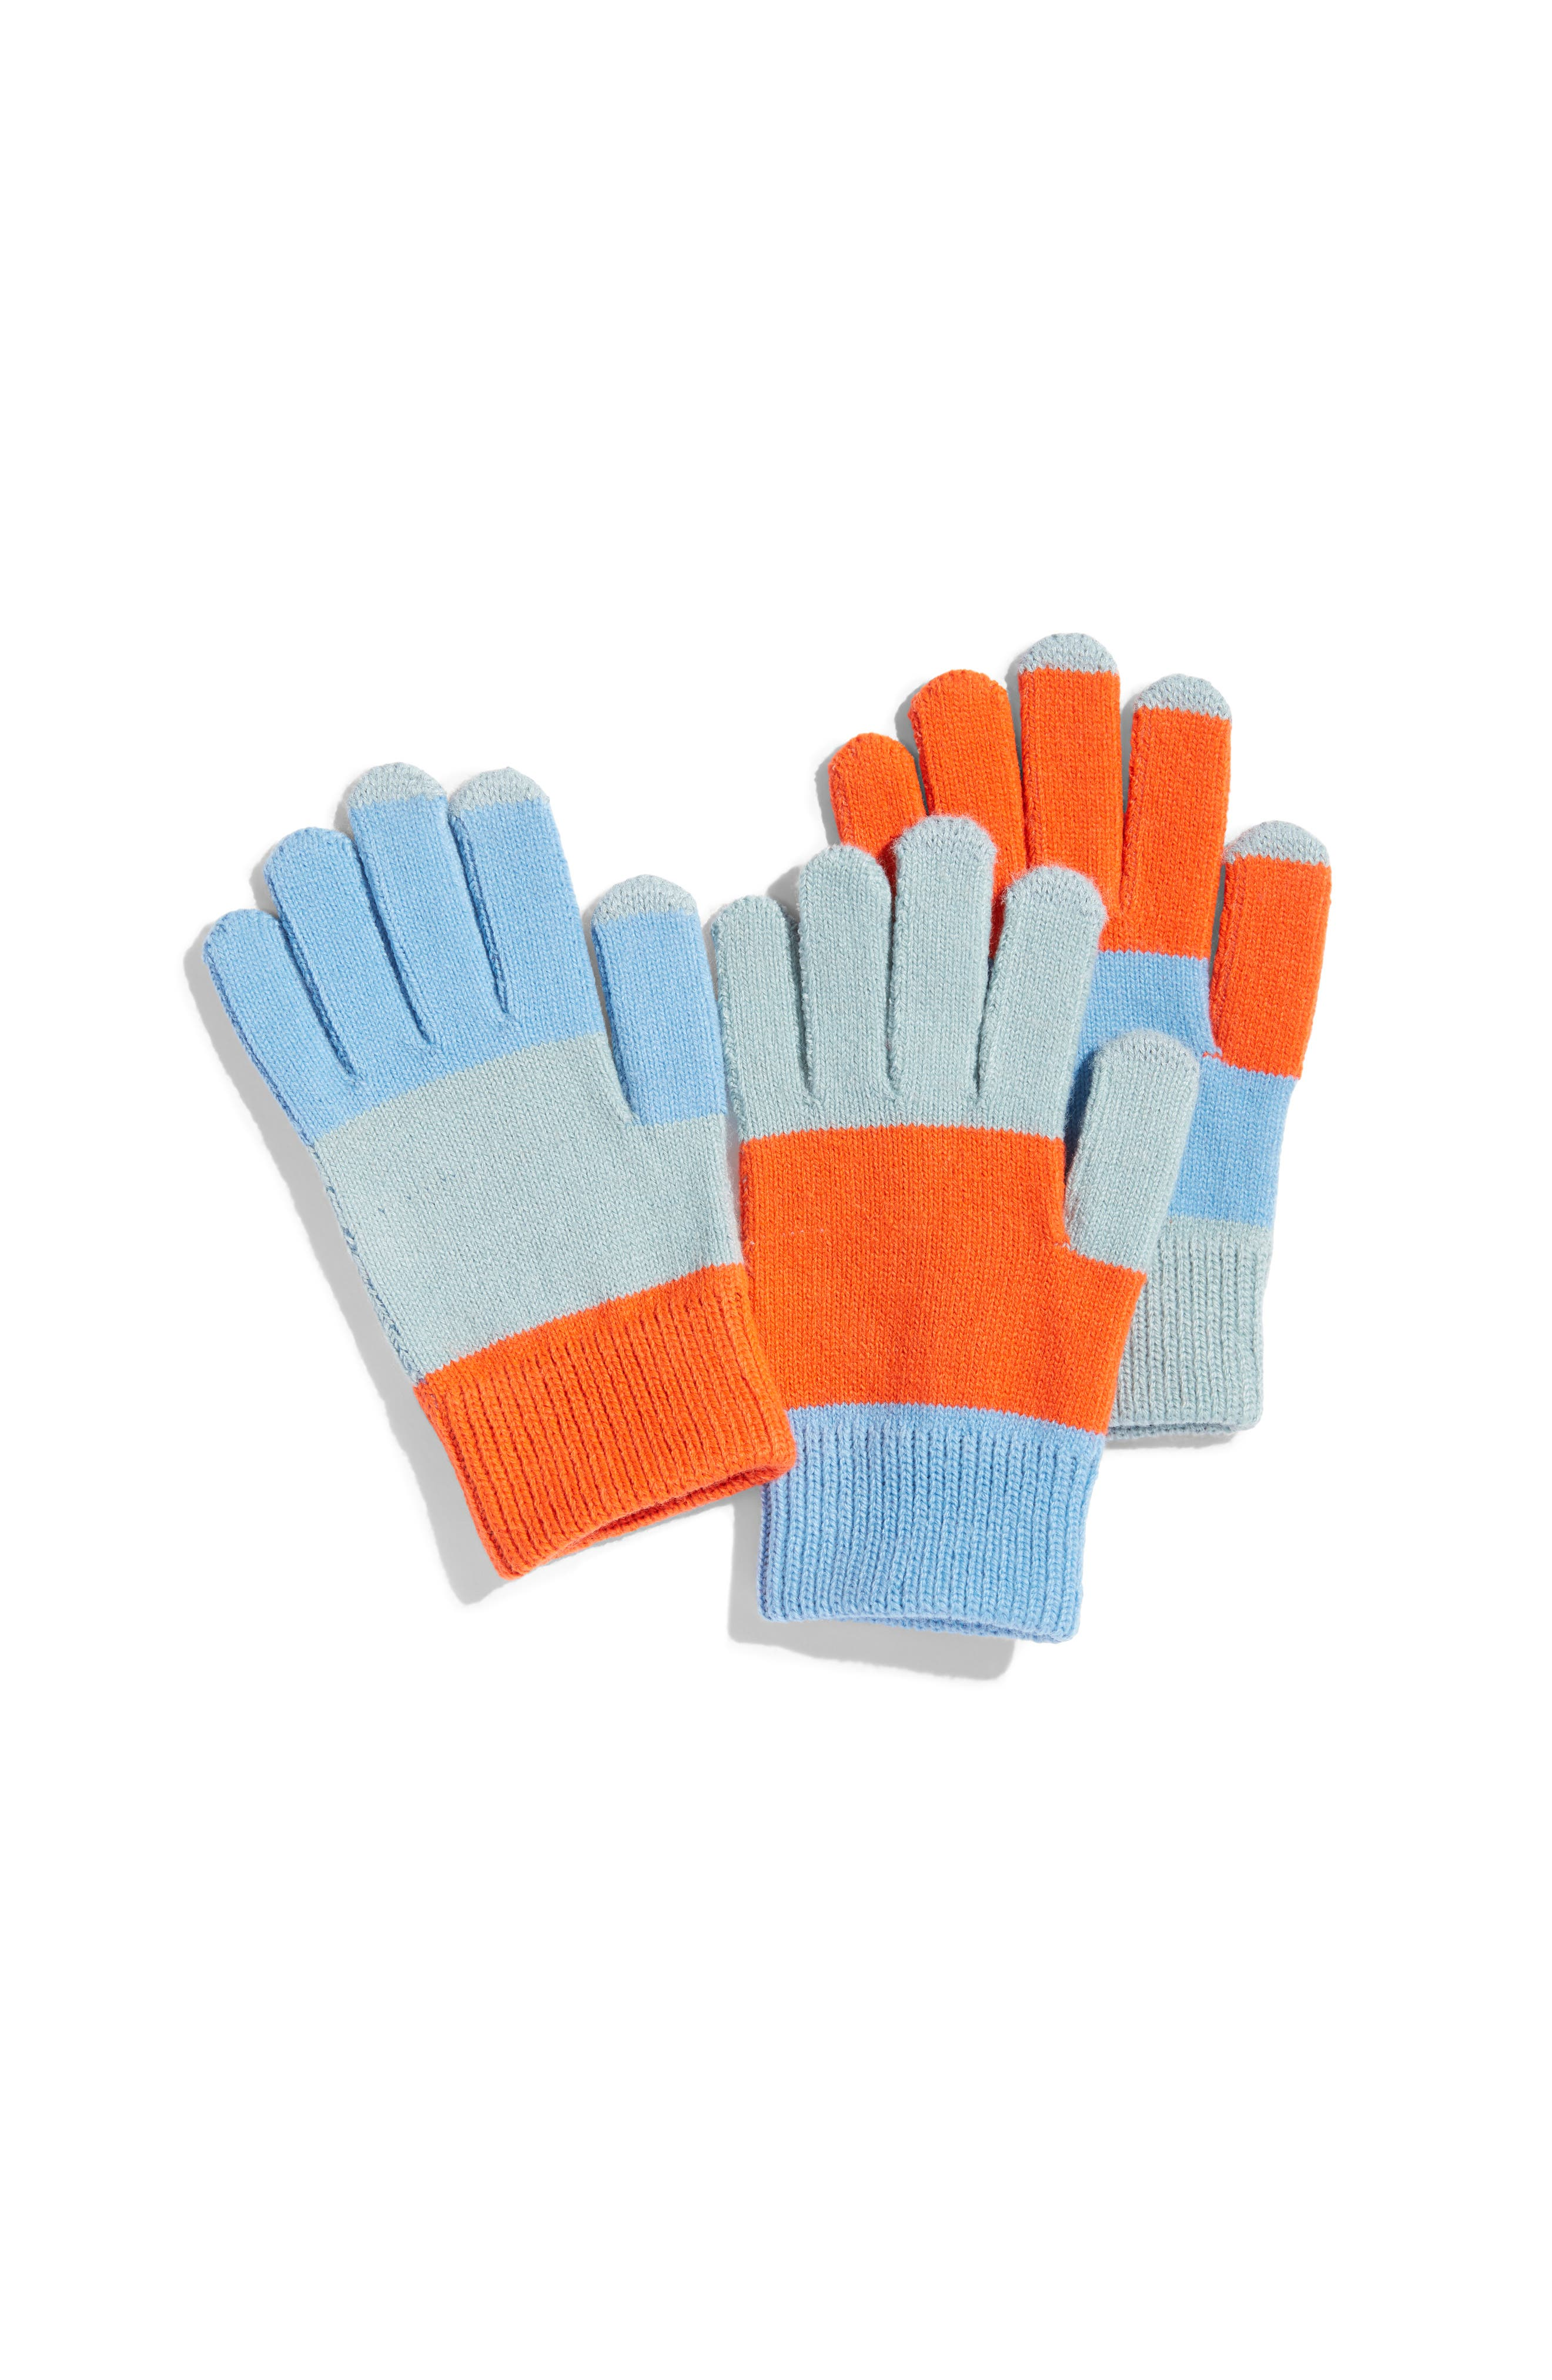 Pair & Spare Set of 3 Touchscreen Gloves,                         Main,                         color, BLUES ORANGE